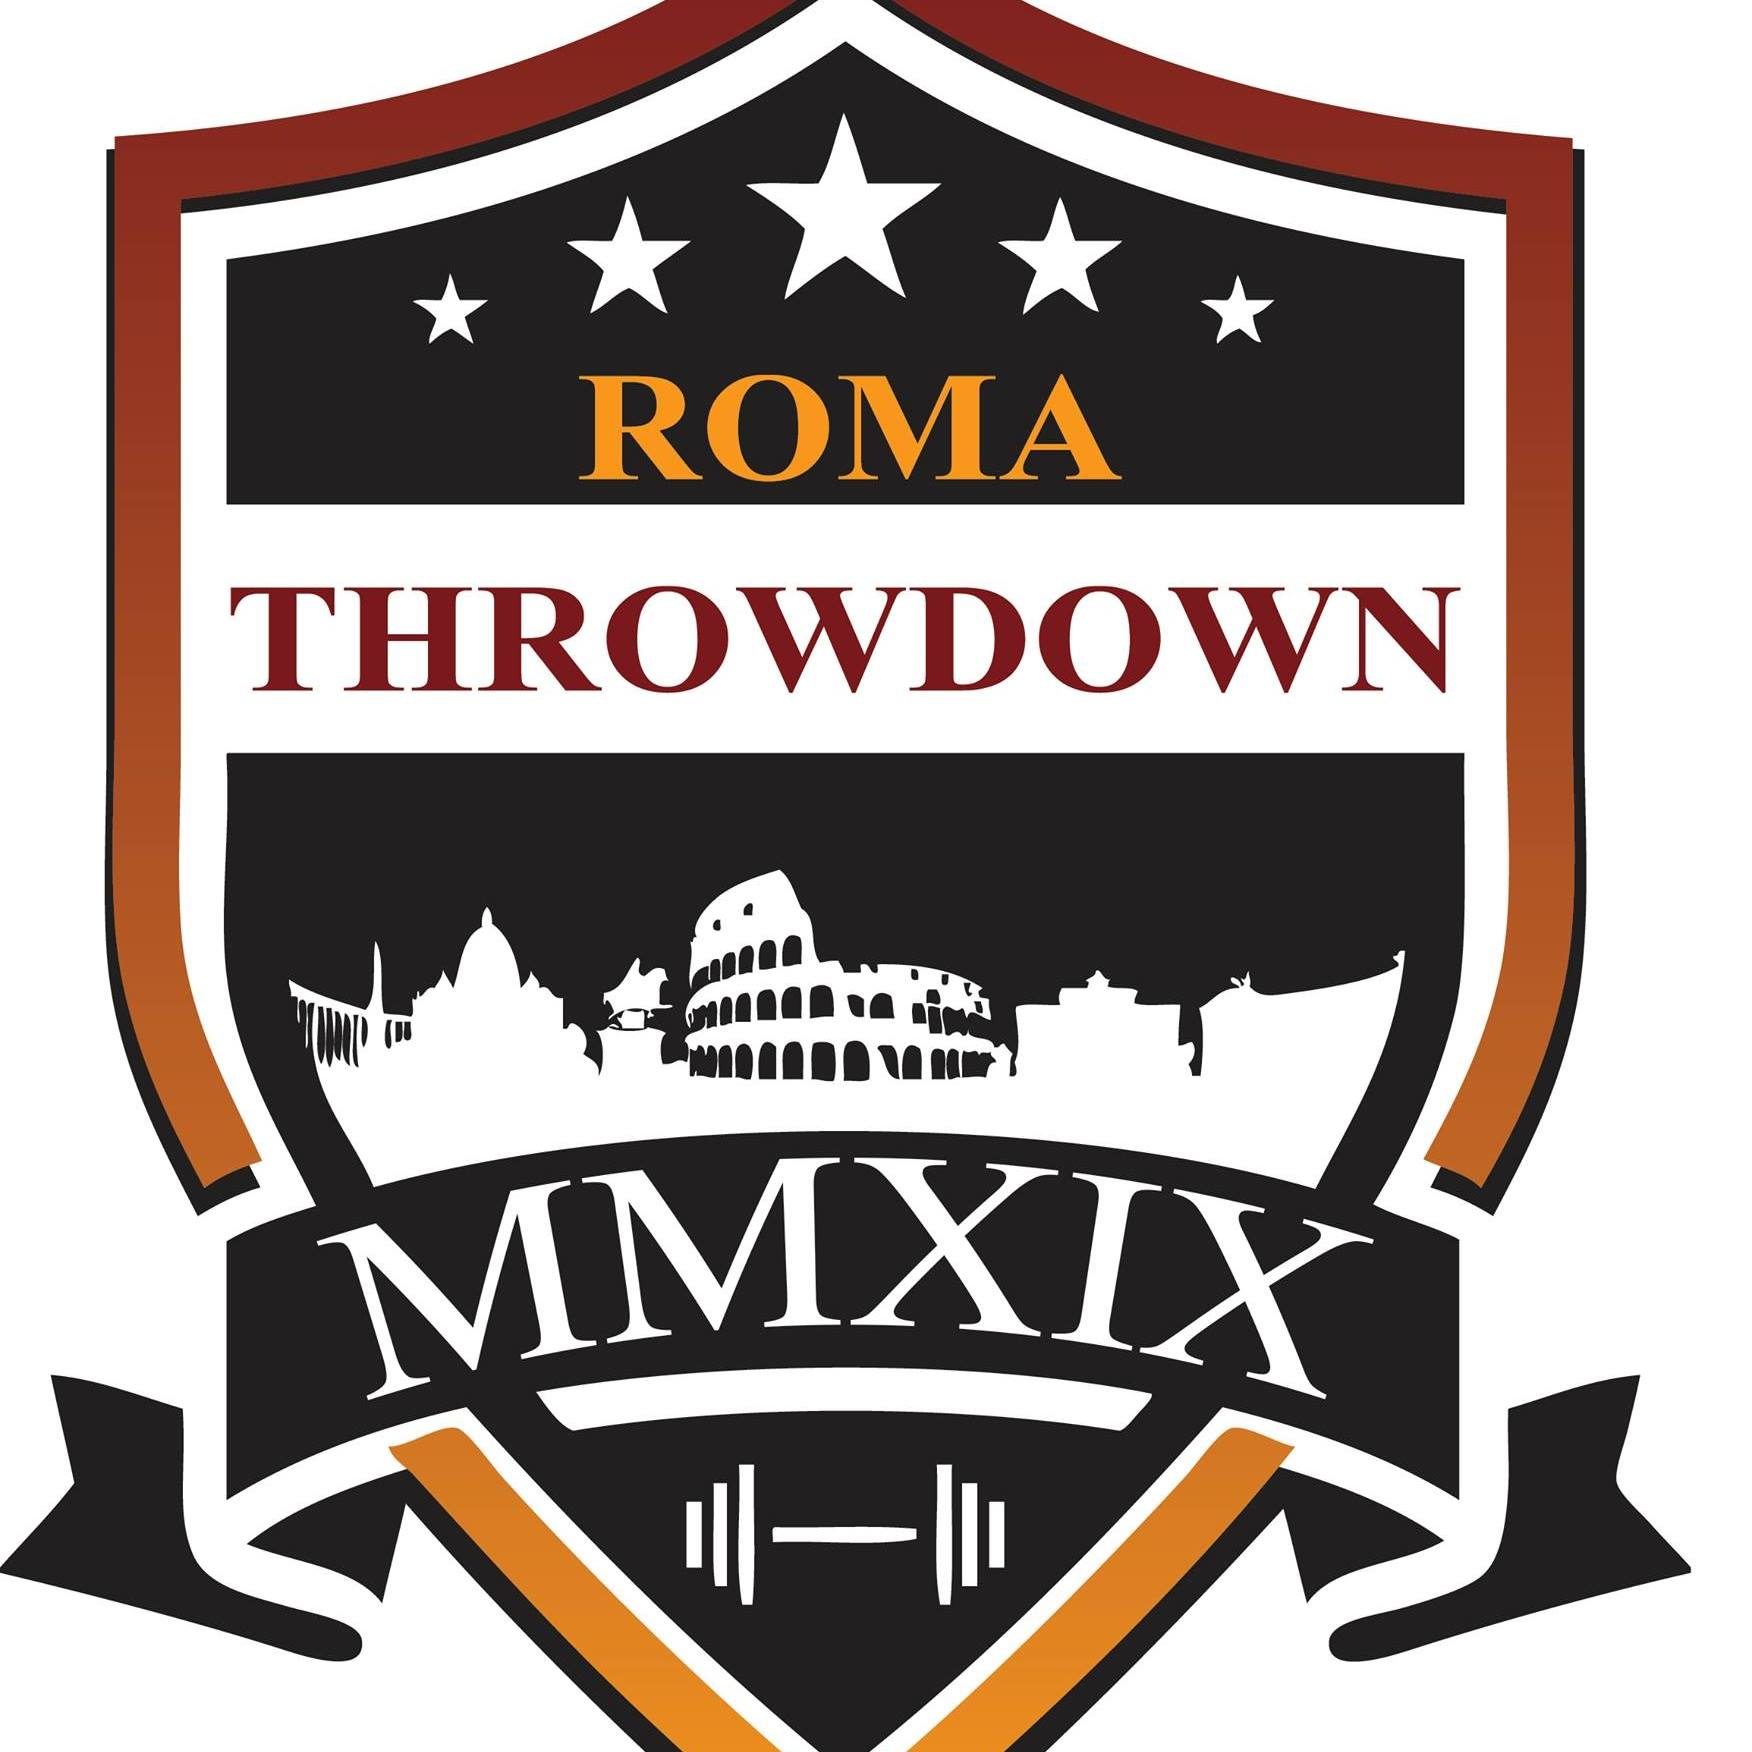 Roma Throwdown - Roma - CrossFit Italia | The SunWod - viaggi e alloggi